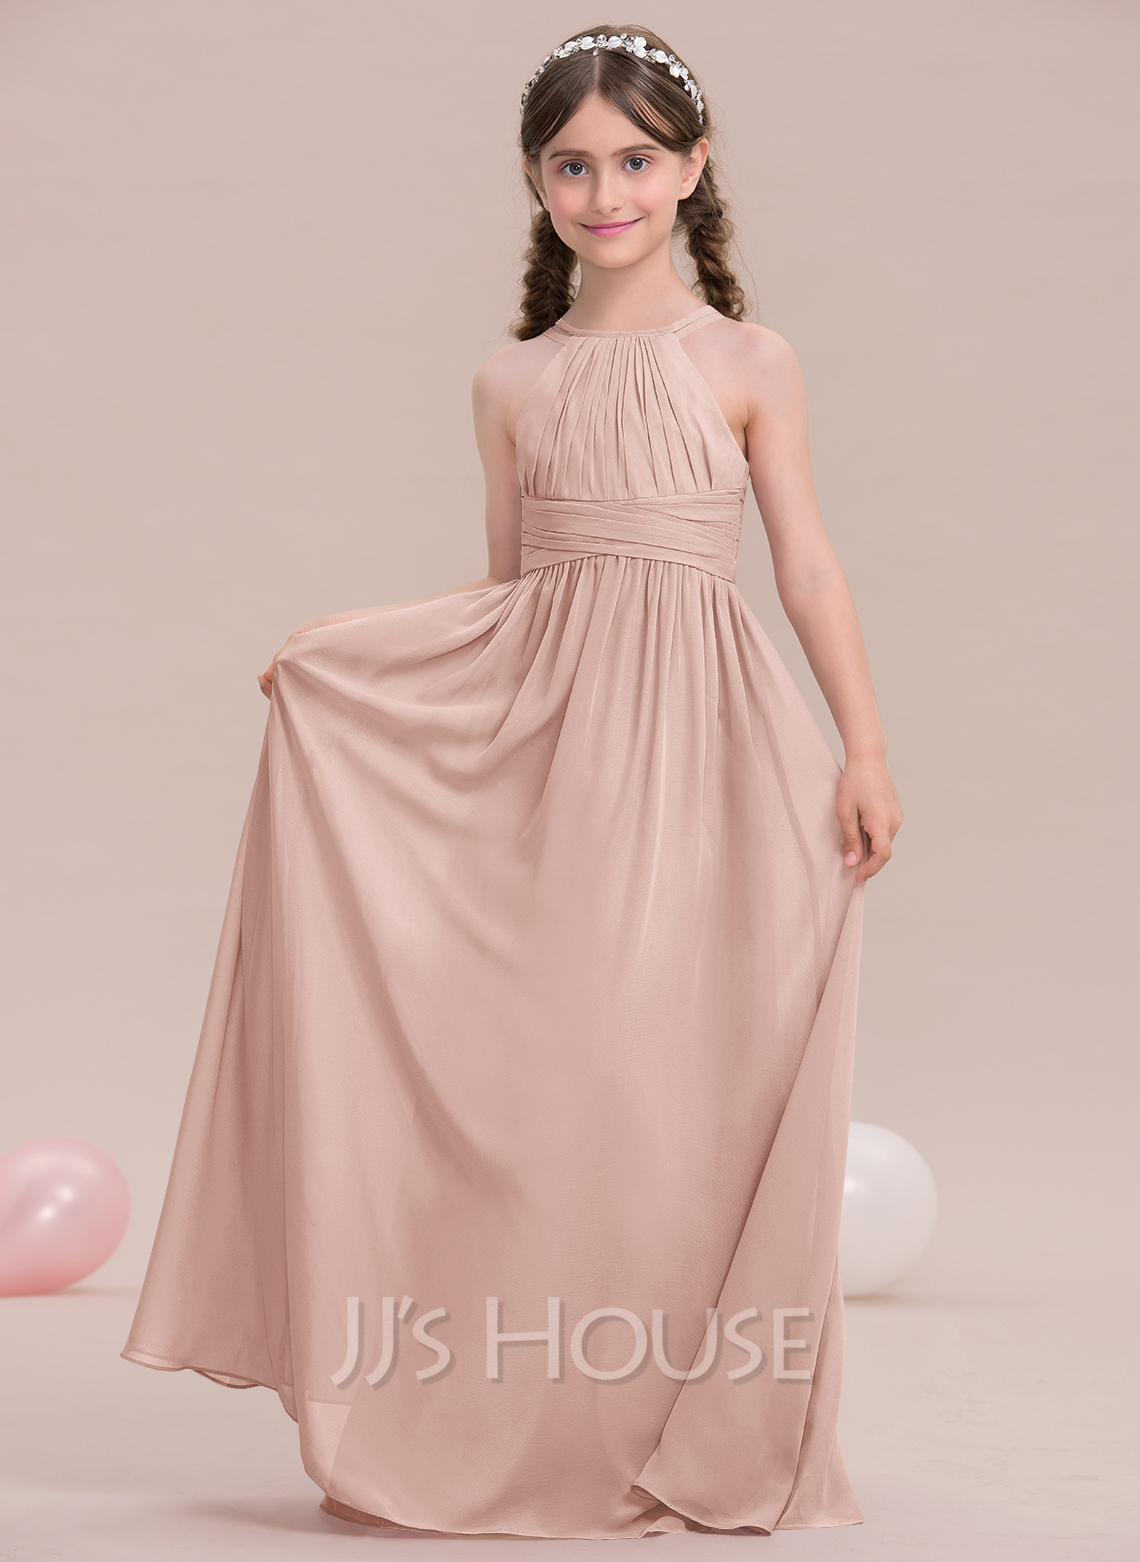 cd1e6a4800 A-Line Princess Scoop Neck Floor-Length Chiffon Junior Bridesmaid Dress  With Ruffle. Loading zoom